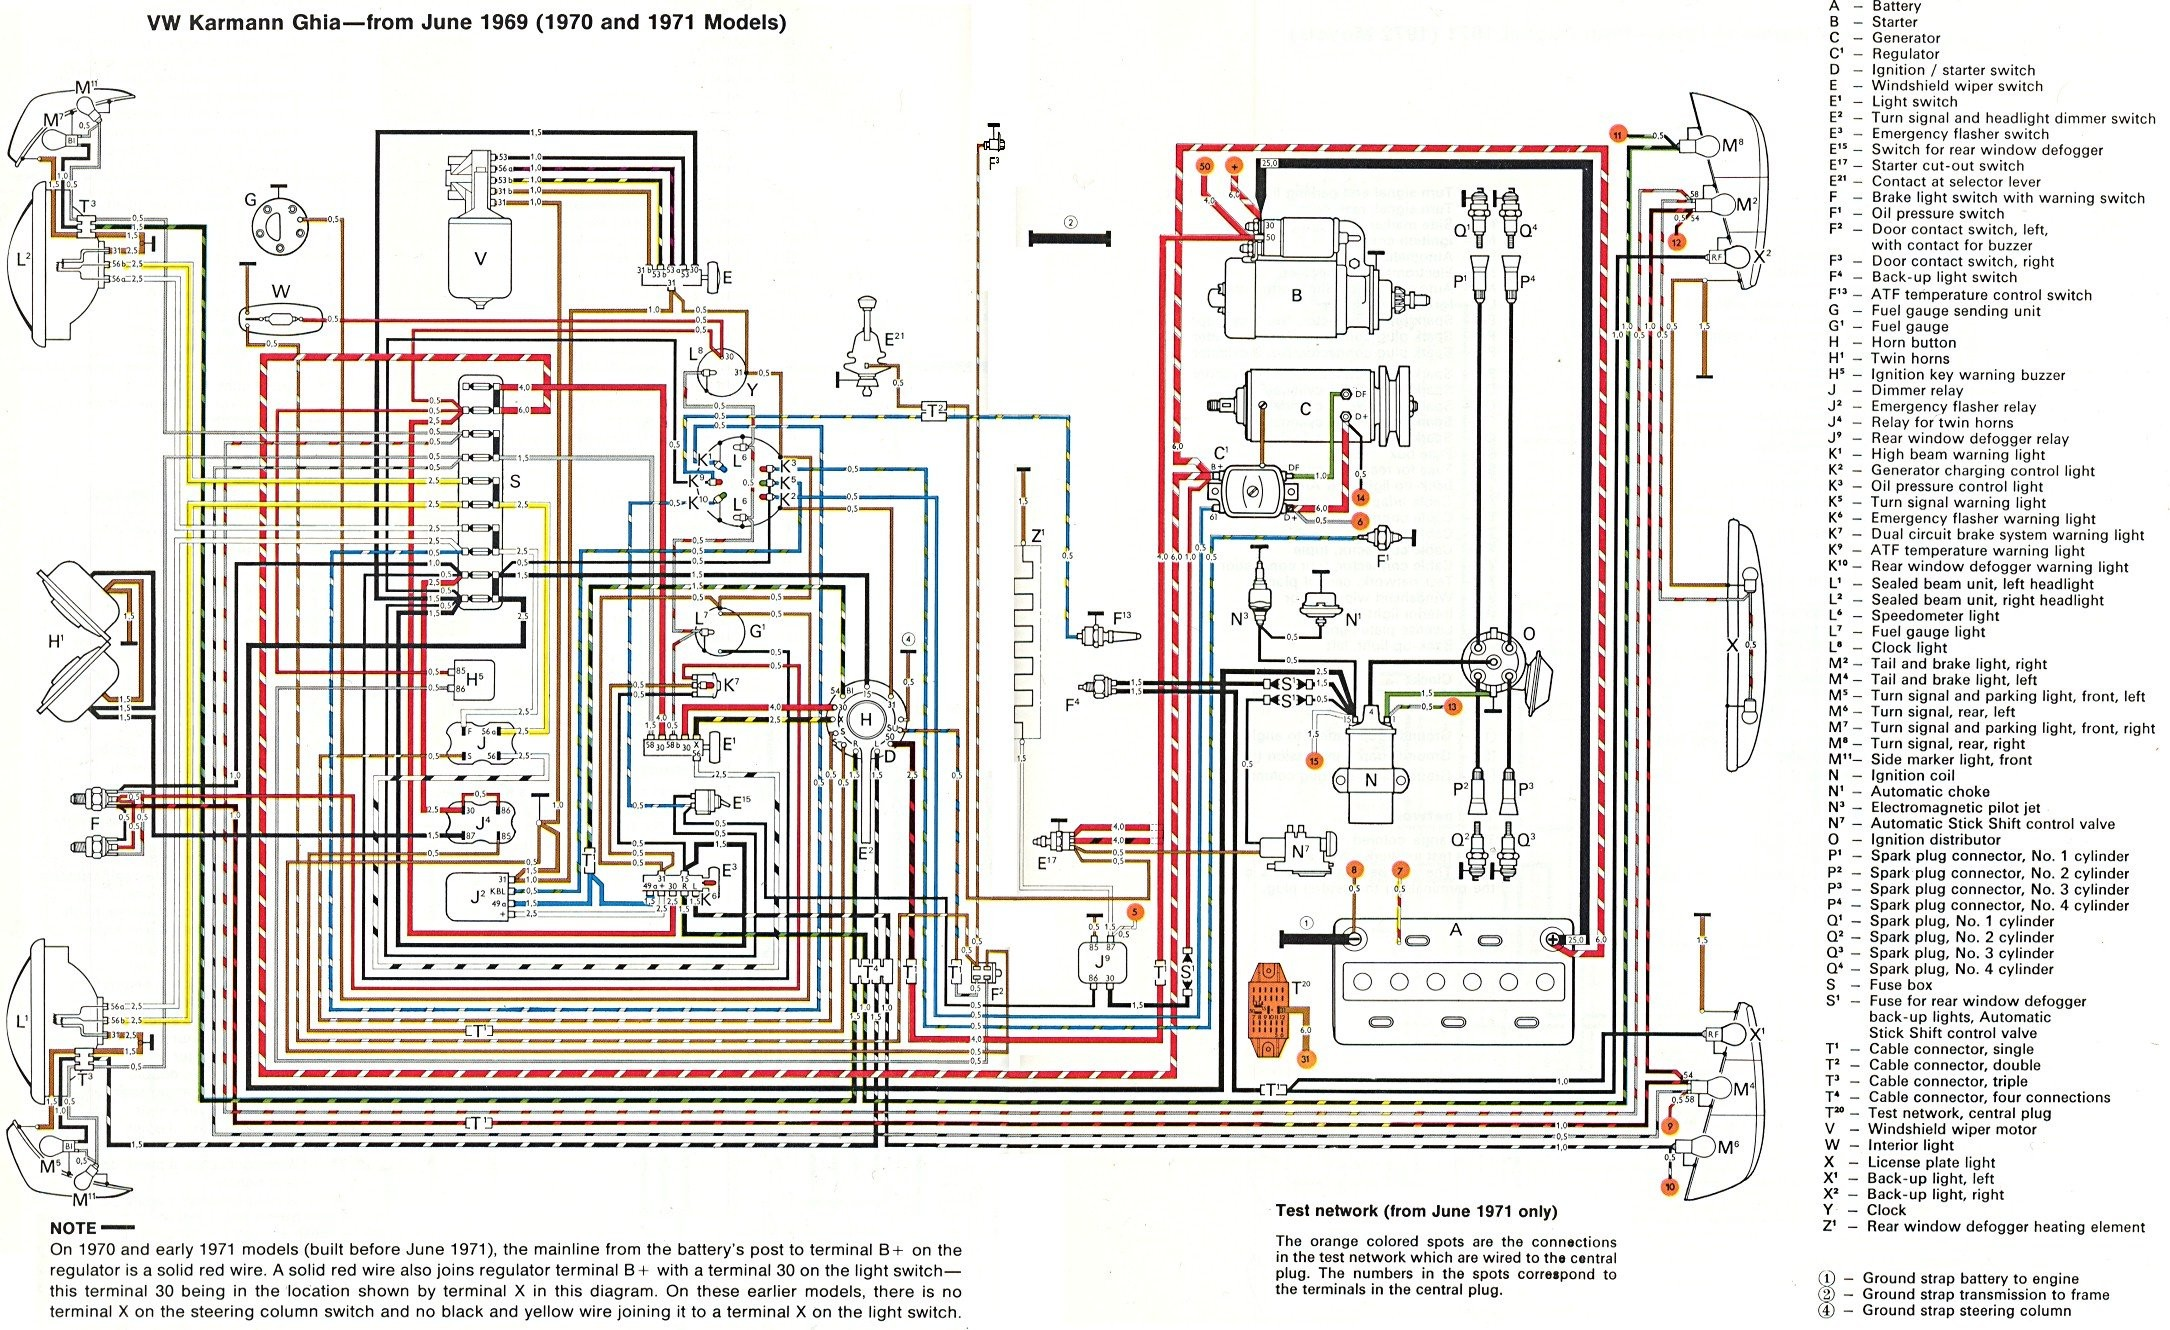 1967 Chevelle Ss Wiring Diagram Schematic Library 1970 Pontiac Gto Perfect Dash Crest 70 Gauge